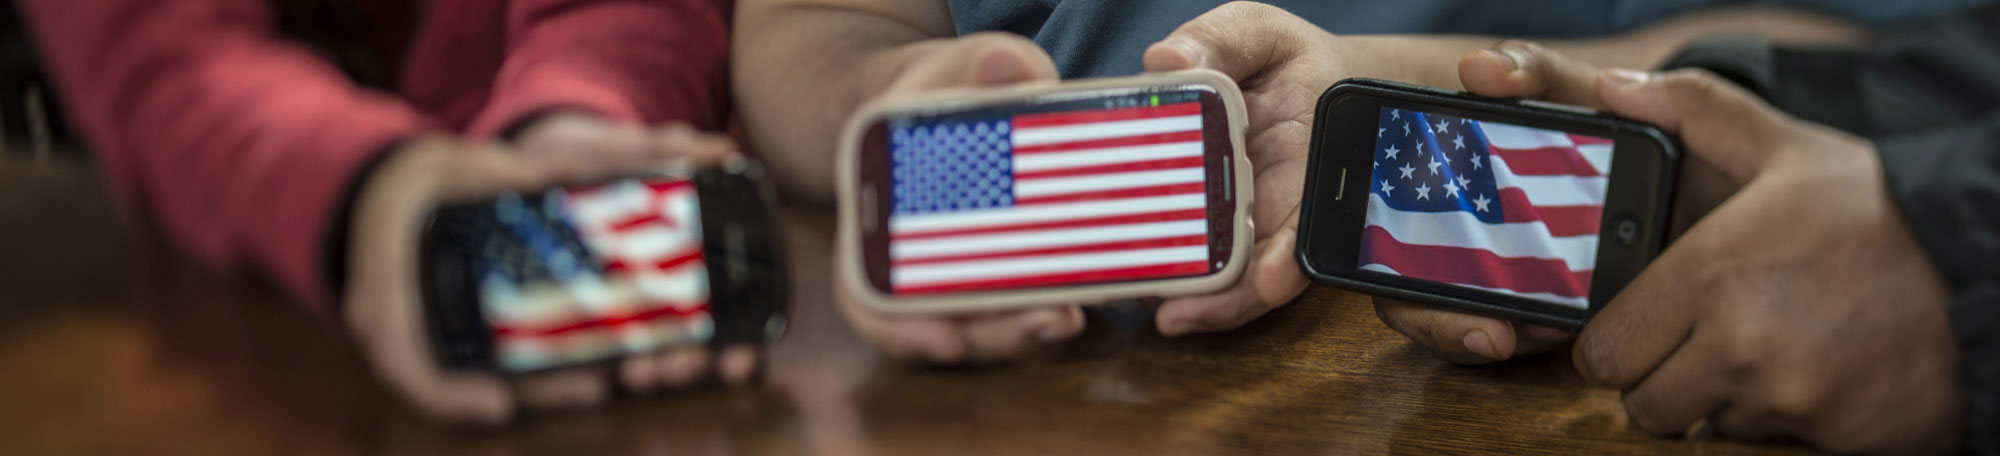 smart phones with american flags